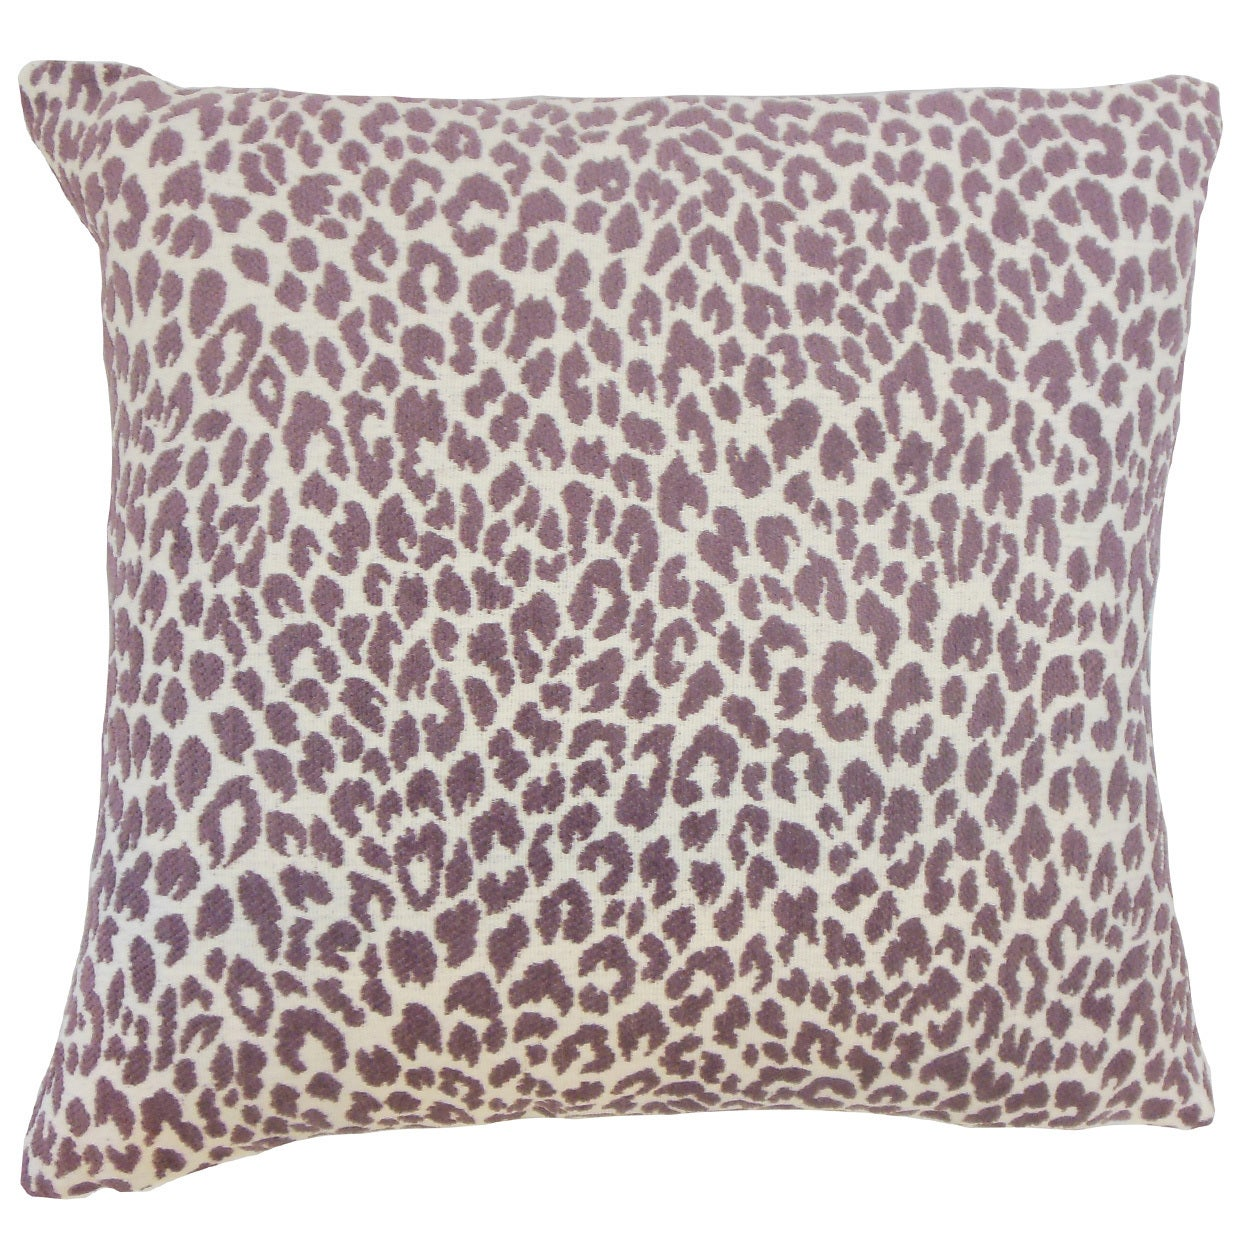 Pesach Animal Print Throw Pillow Cover Orchid (Size), Mul...